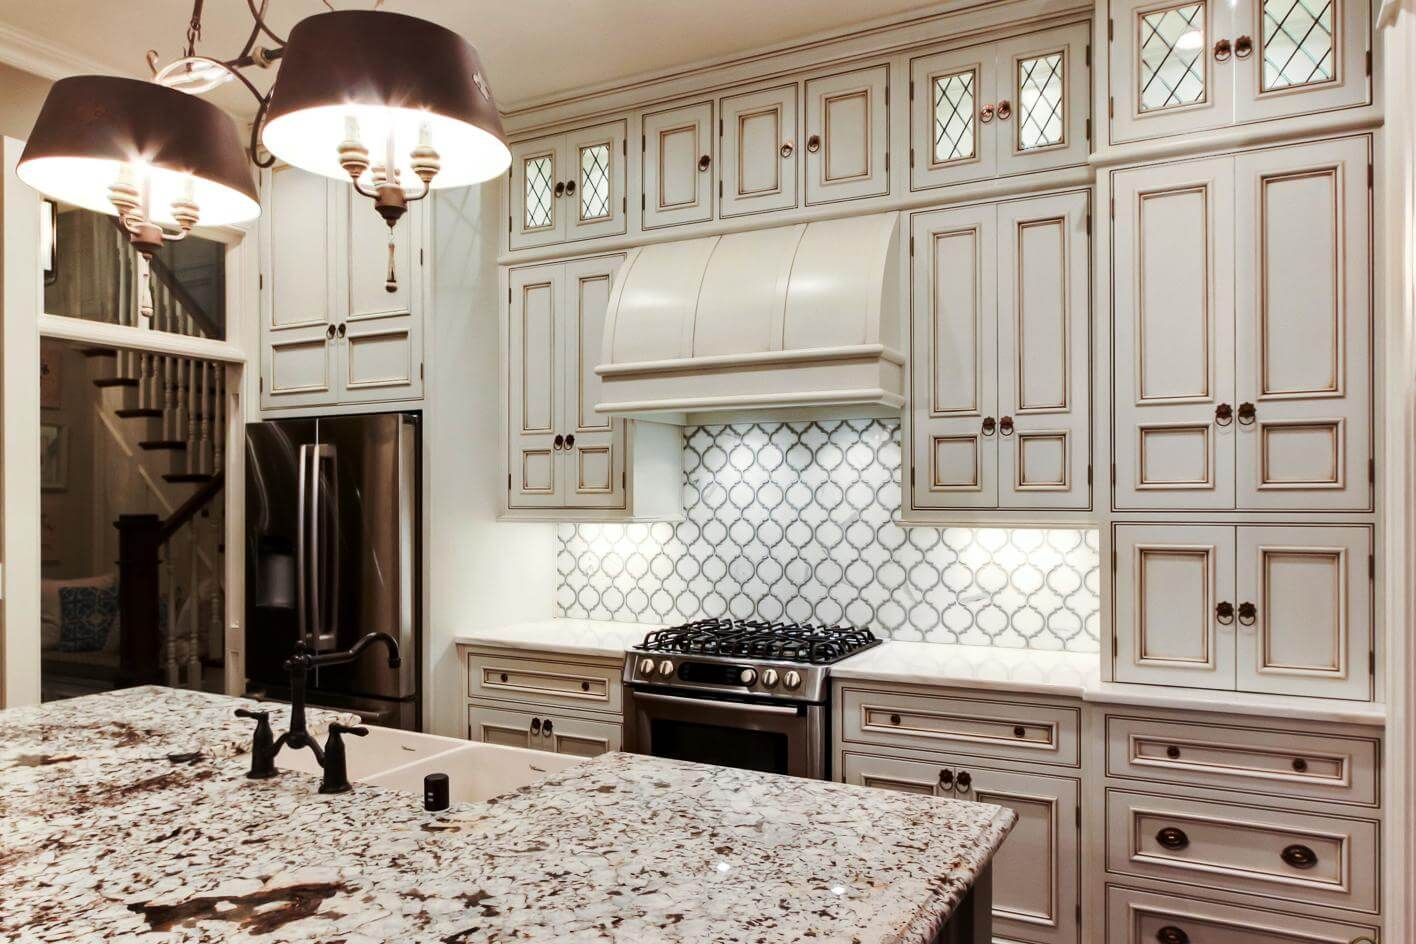 Kitchen island with an extraordinary sink